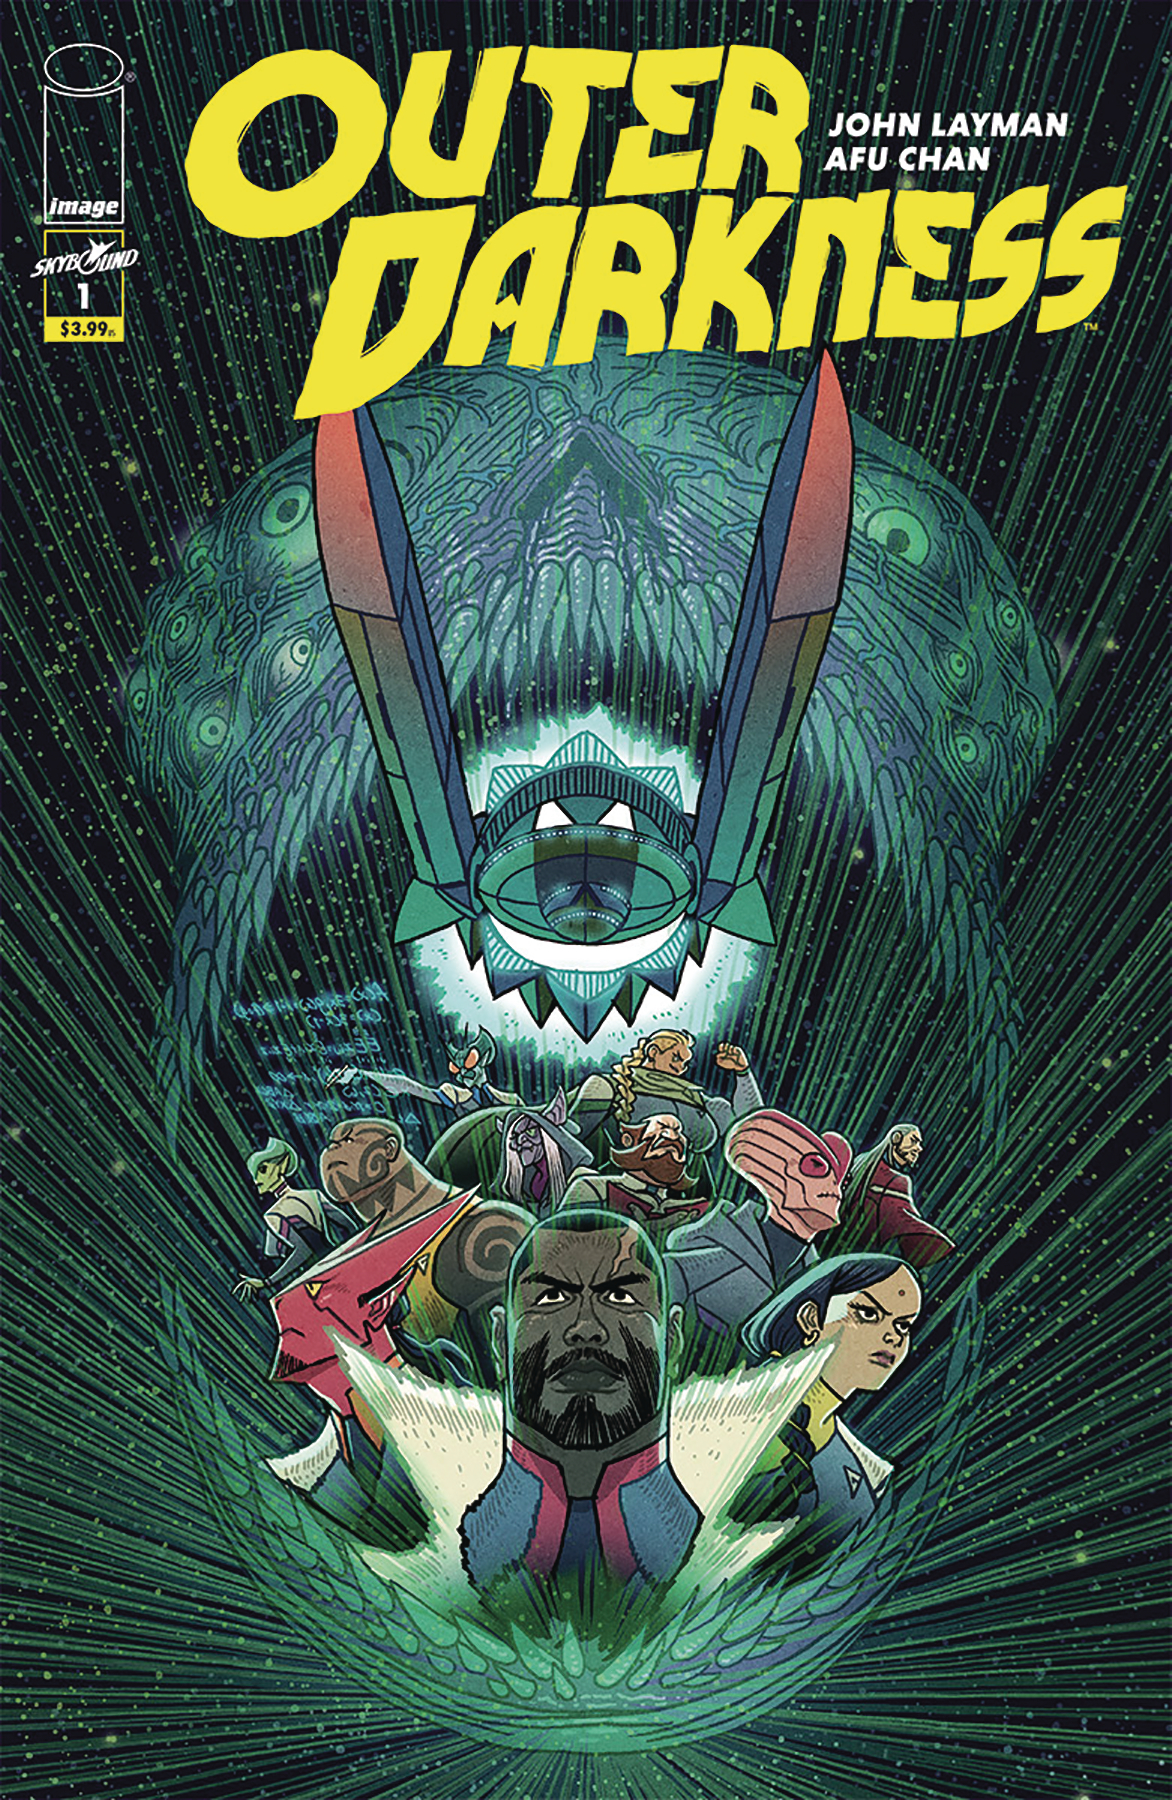 Outer Darkness #1  is out 11/7.